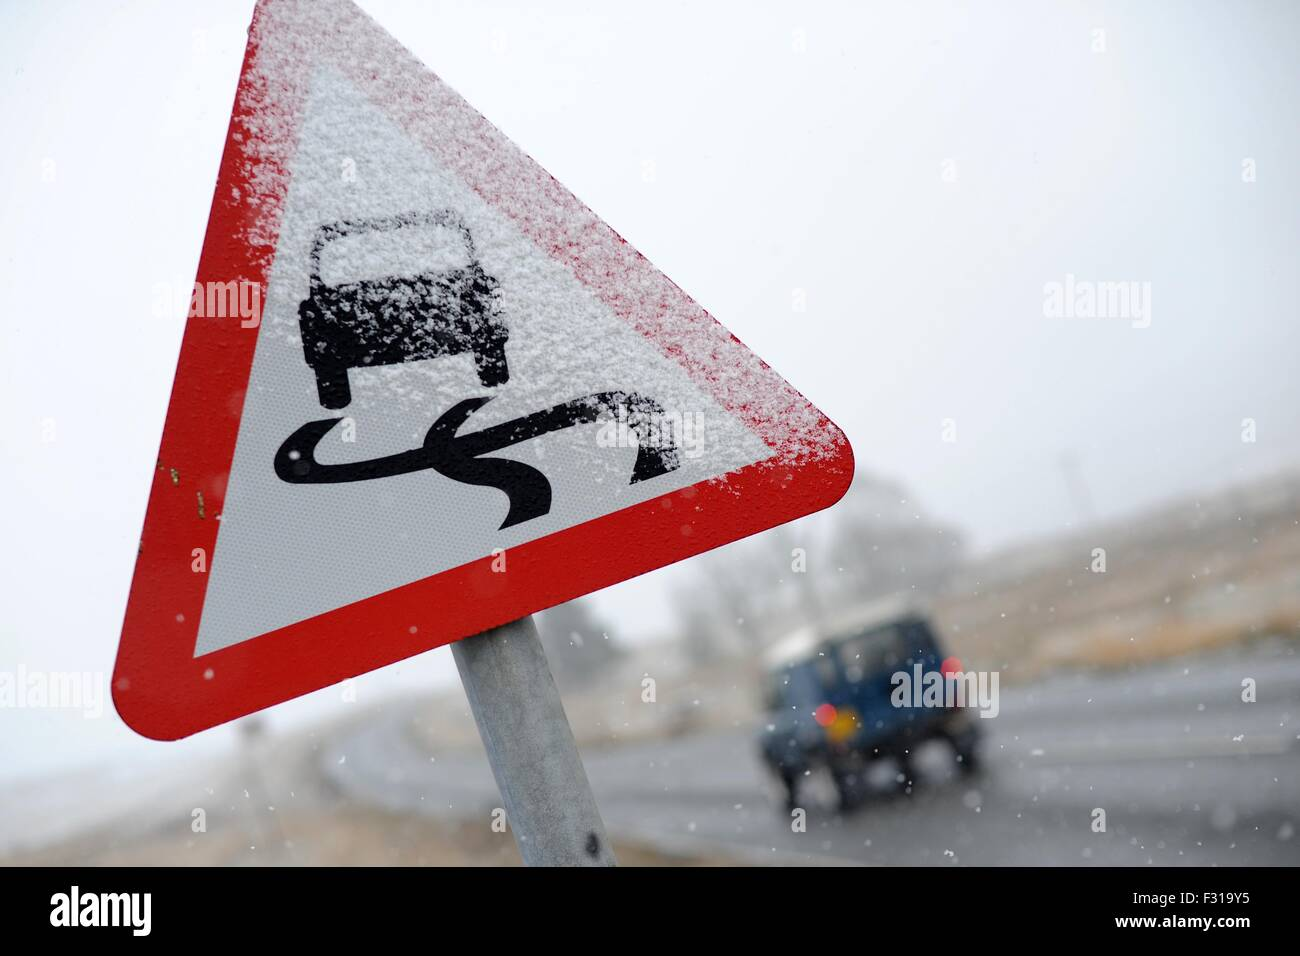 A road sign covered in snow warning car drivers of hazardous driving conditions. - Stock Image